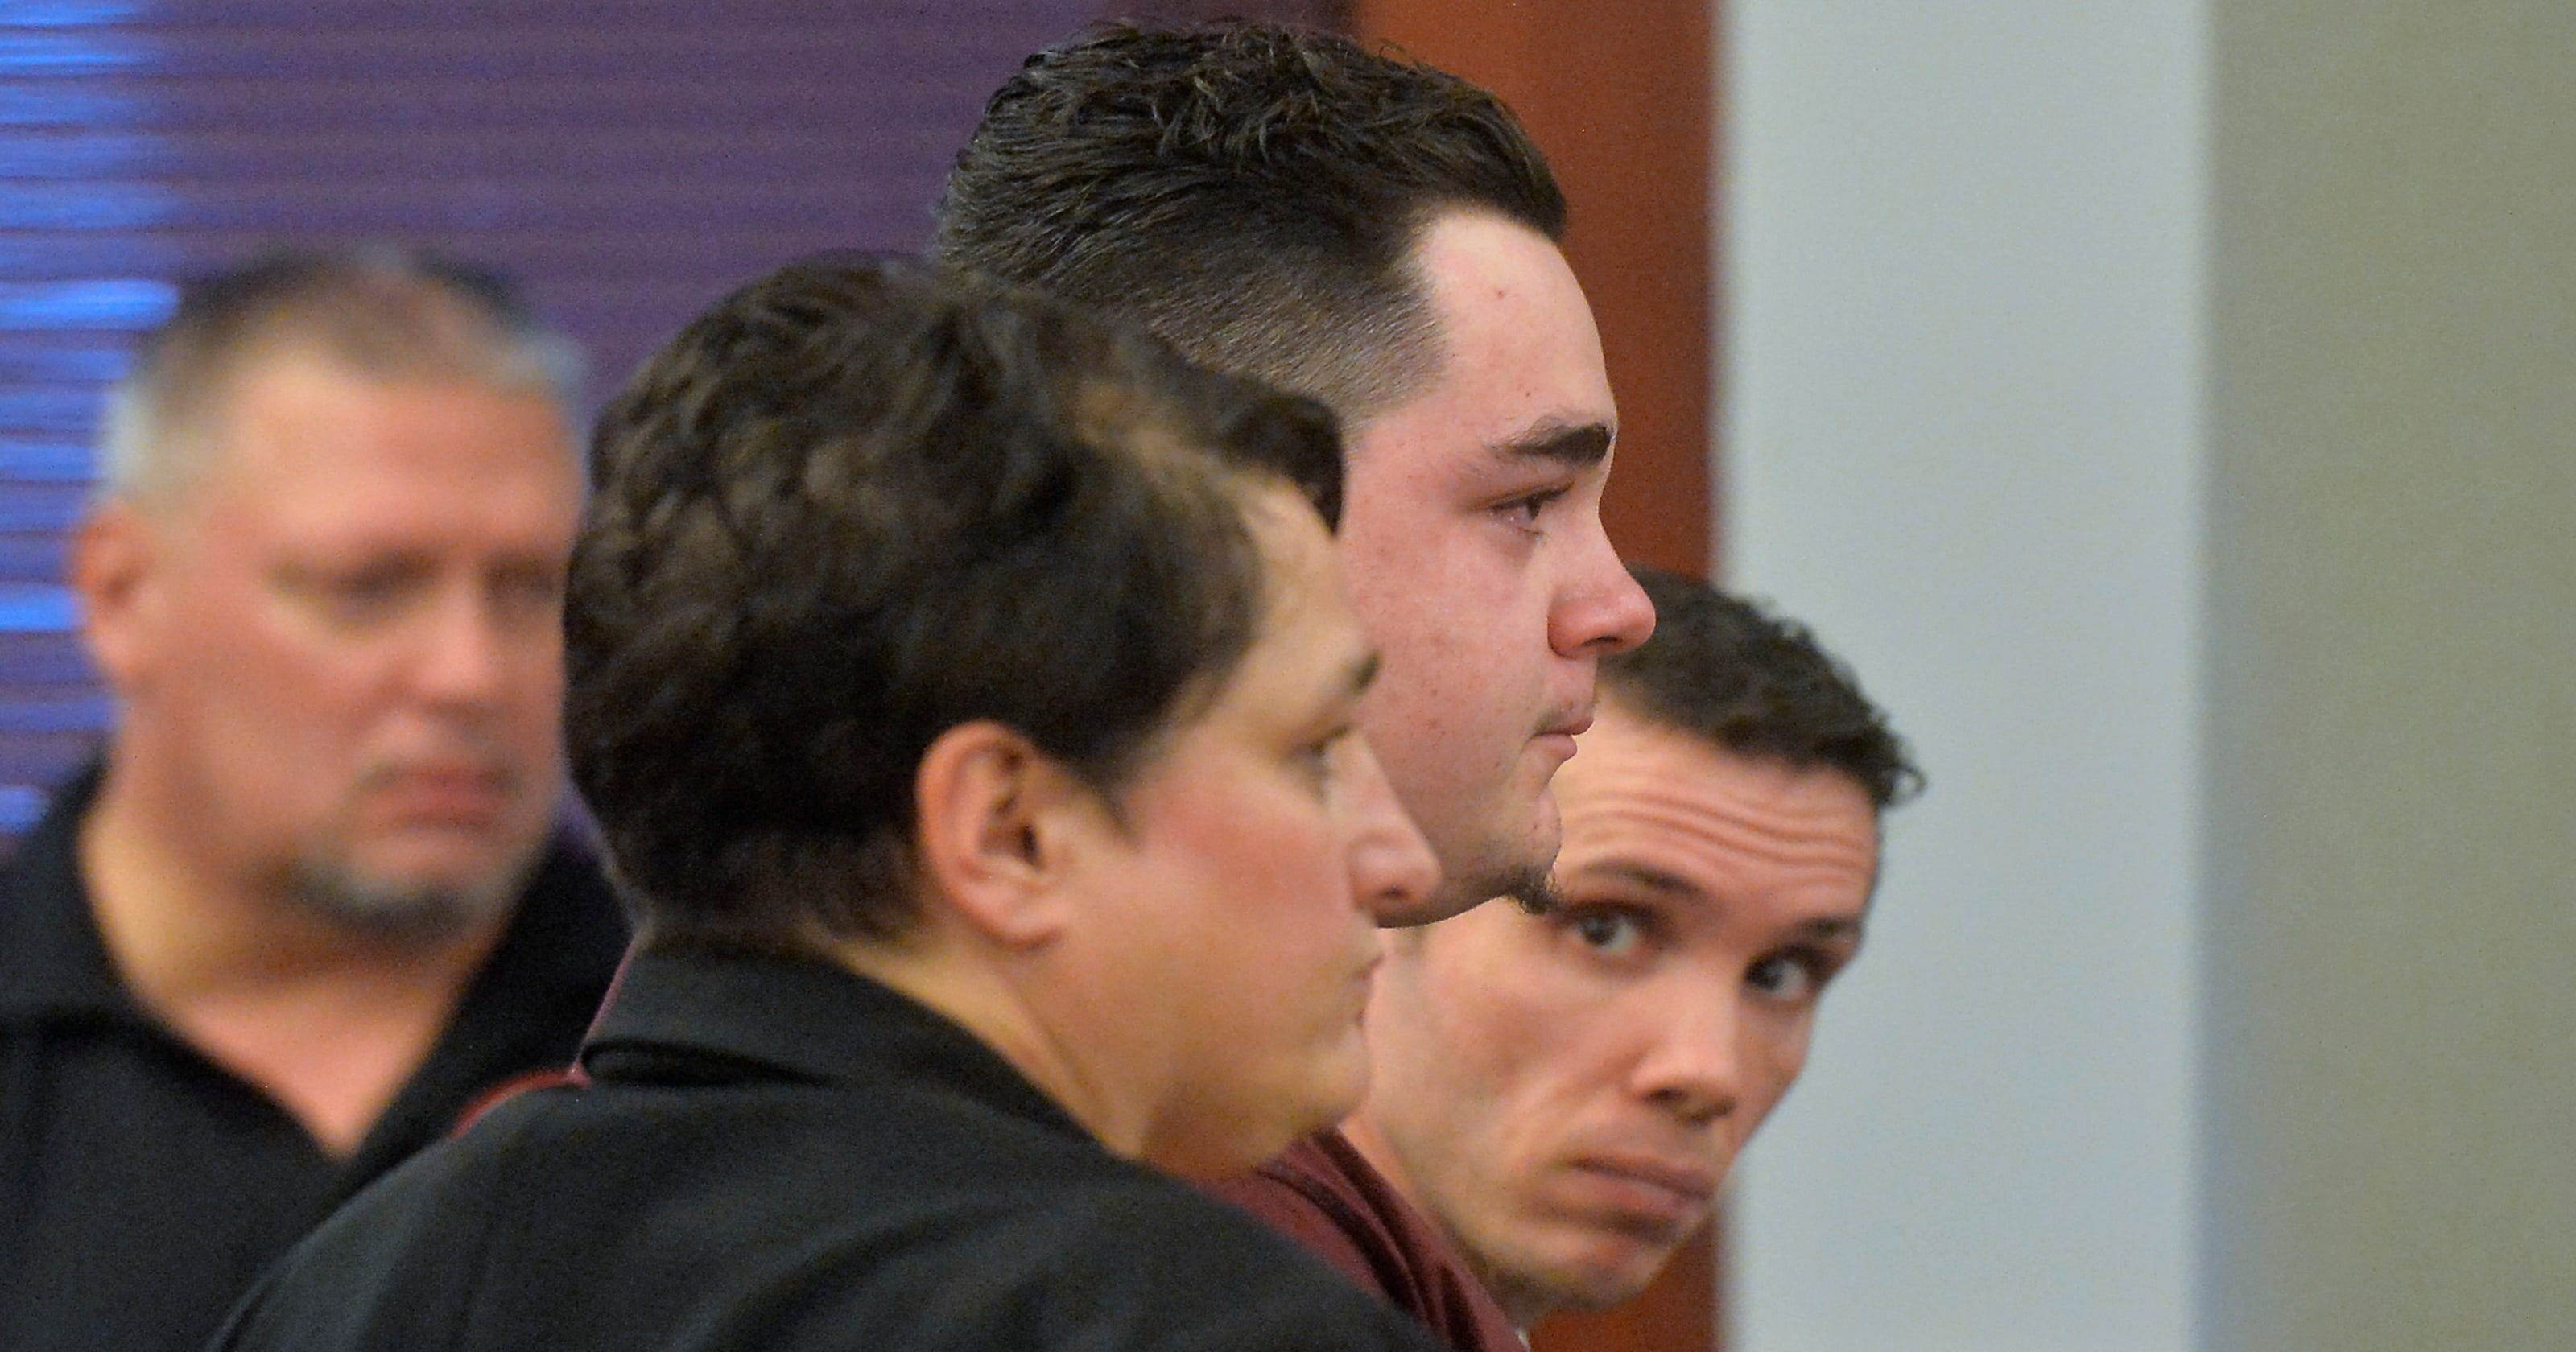 Joseph Knowles sentenced to 60 years in prison